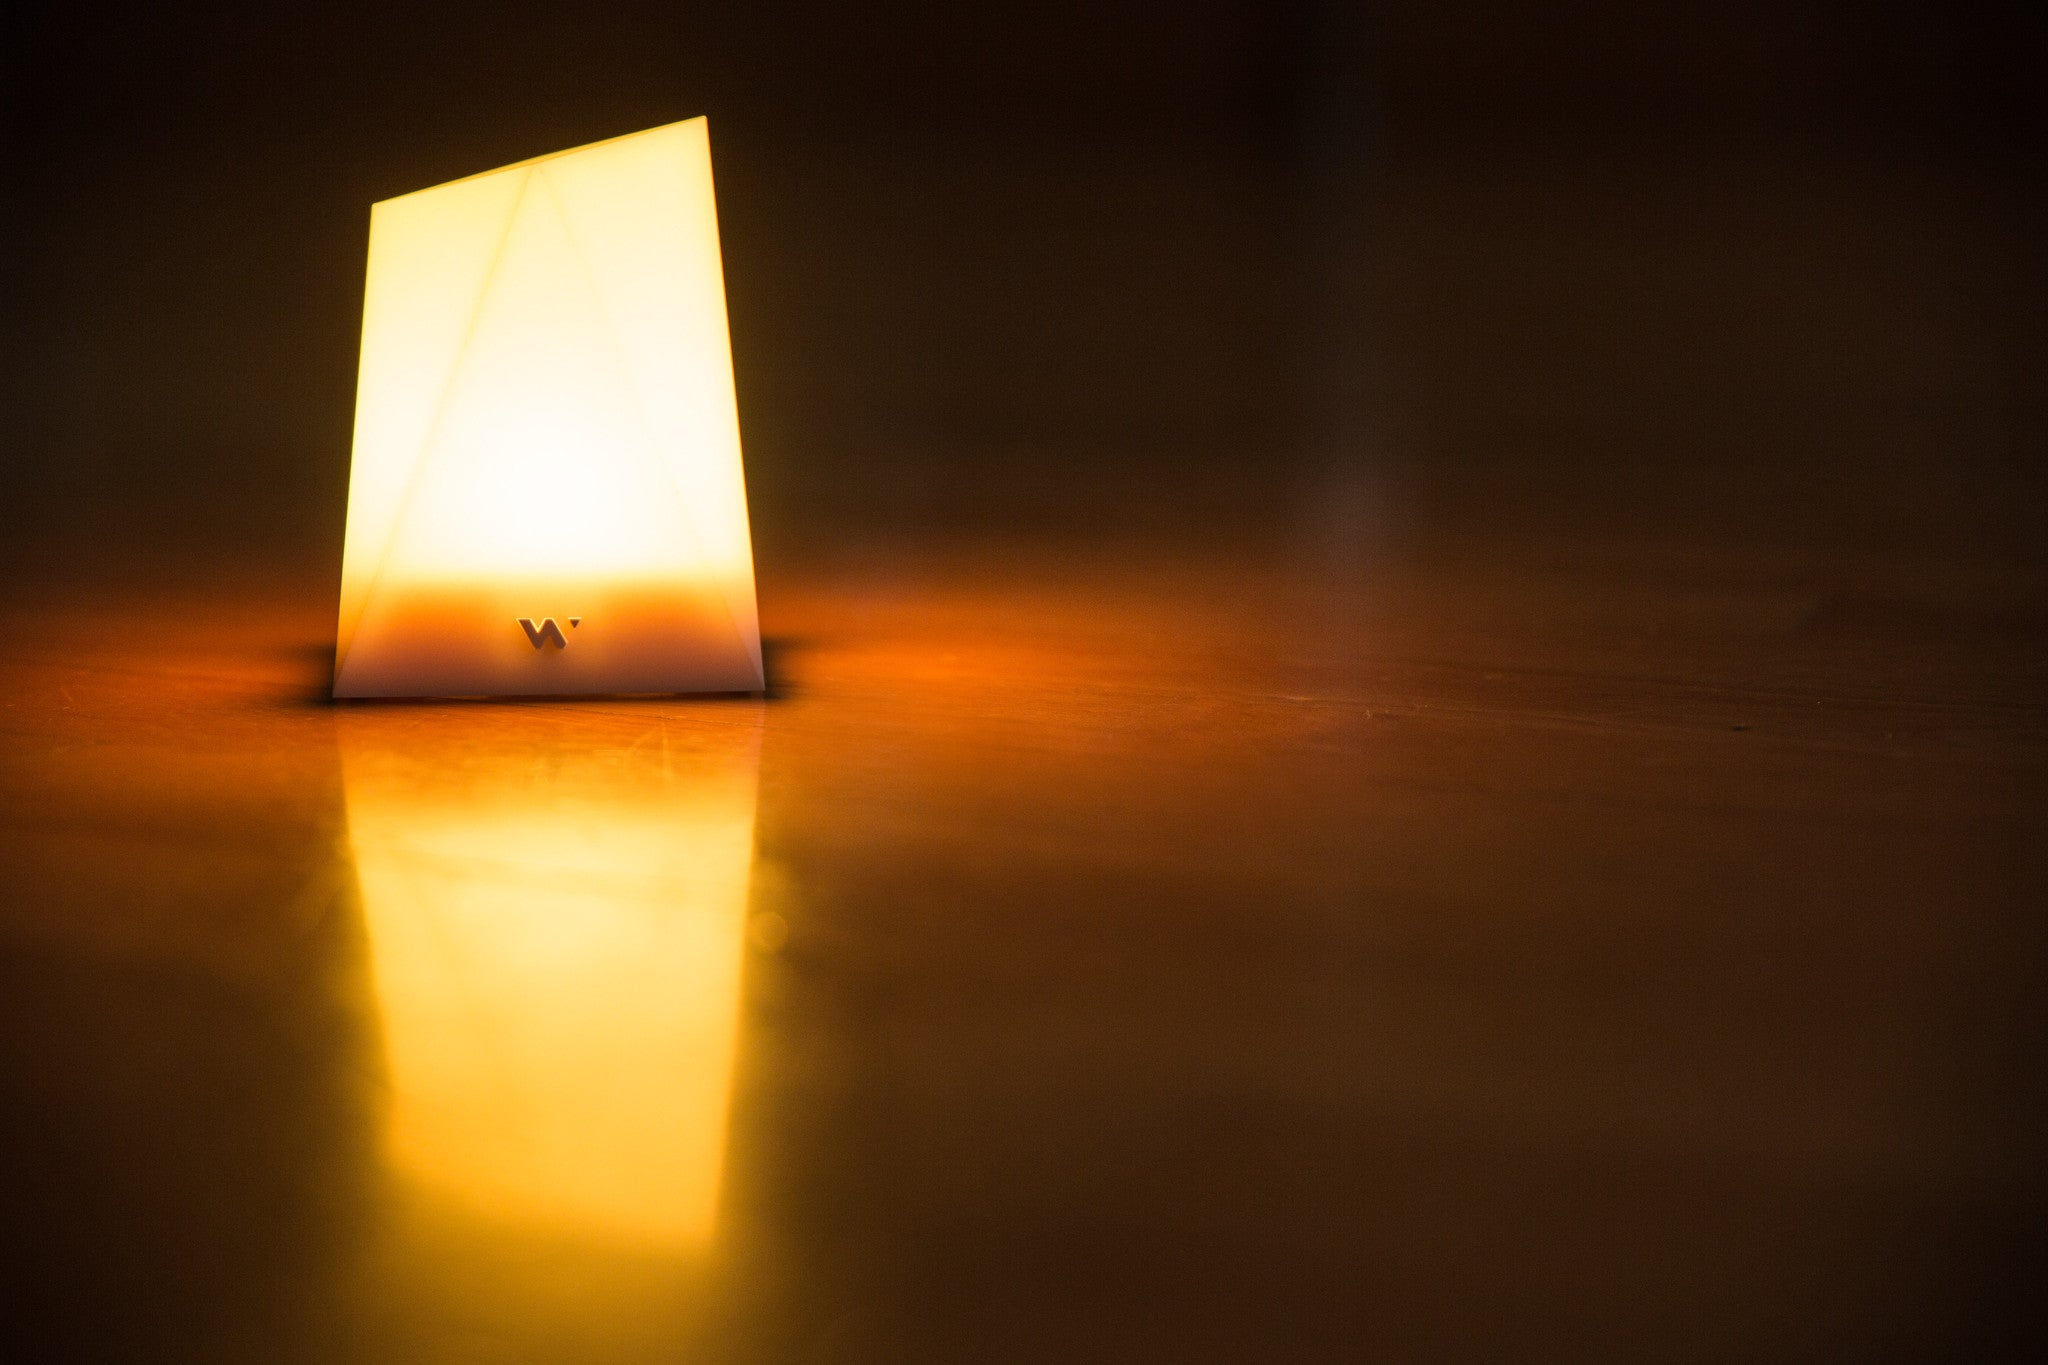 NOTTI - Smart Light with Notification